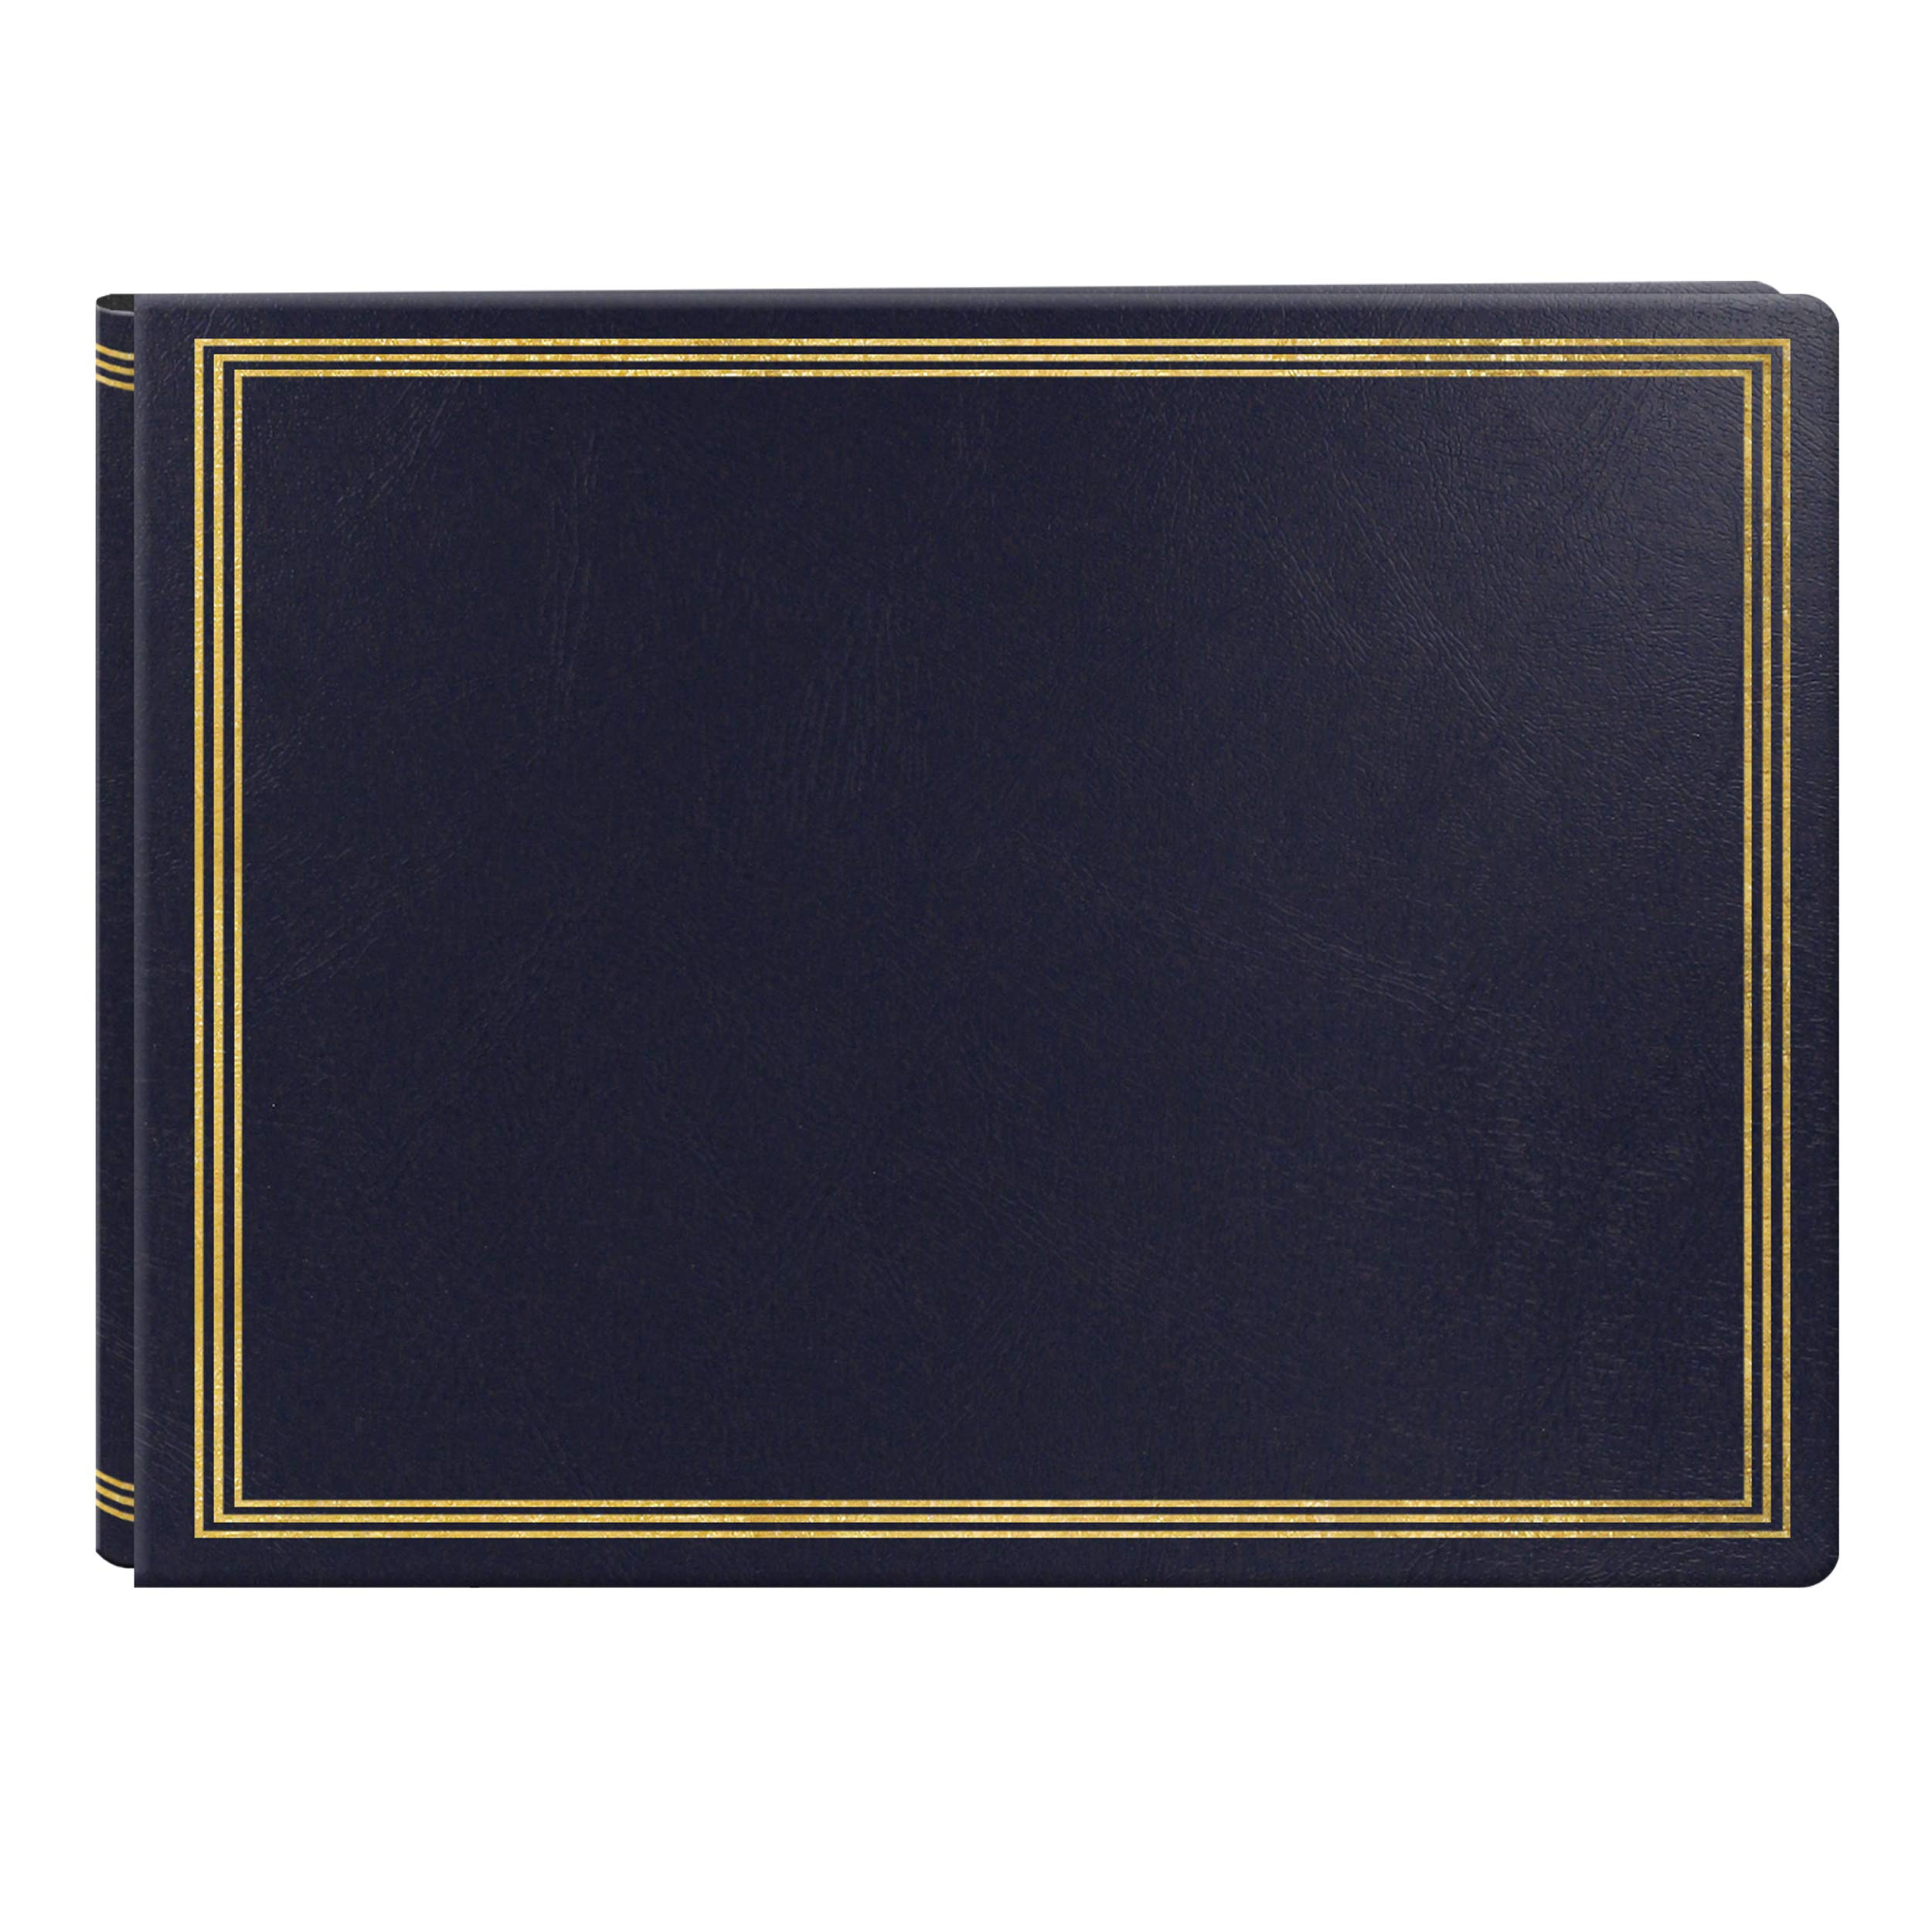 Extra Large Magnetic Page X-Pando Photo Album, Navy Blue by Pioneer Photo Albums